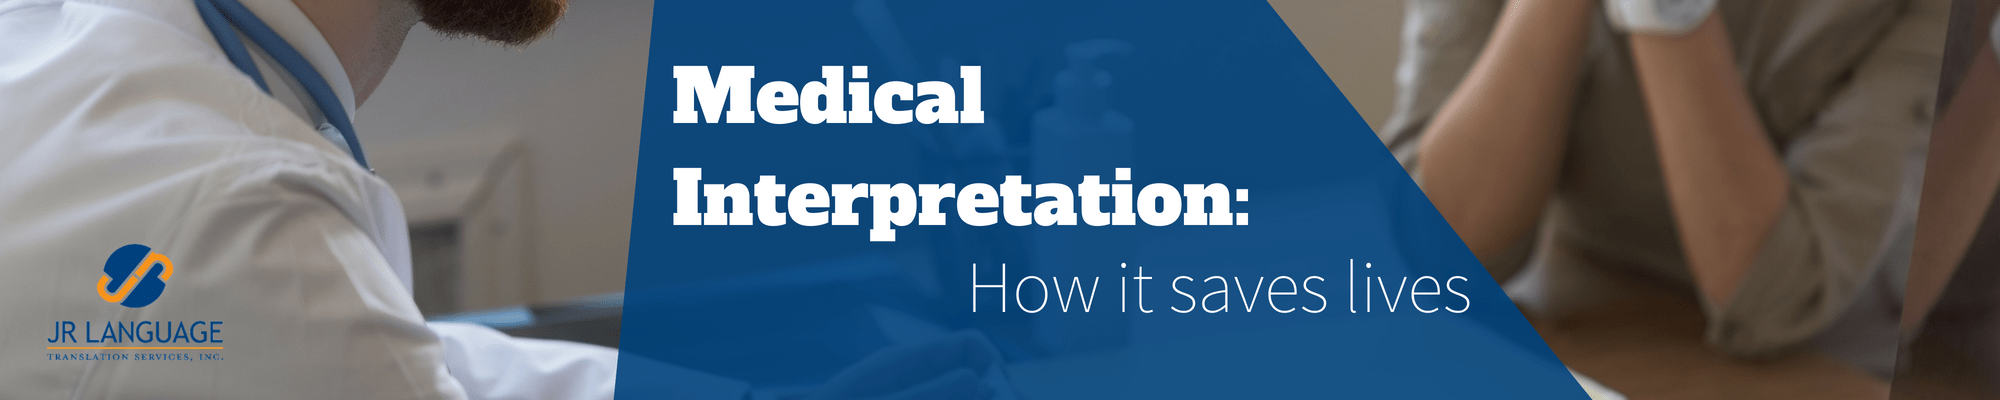 medical interpretation and how it saves lives